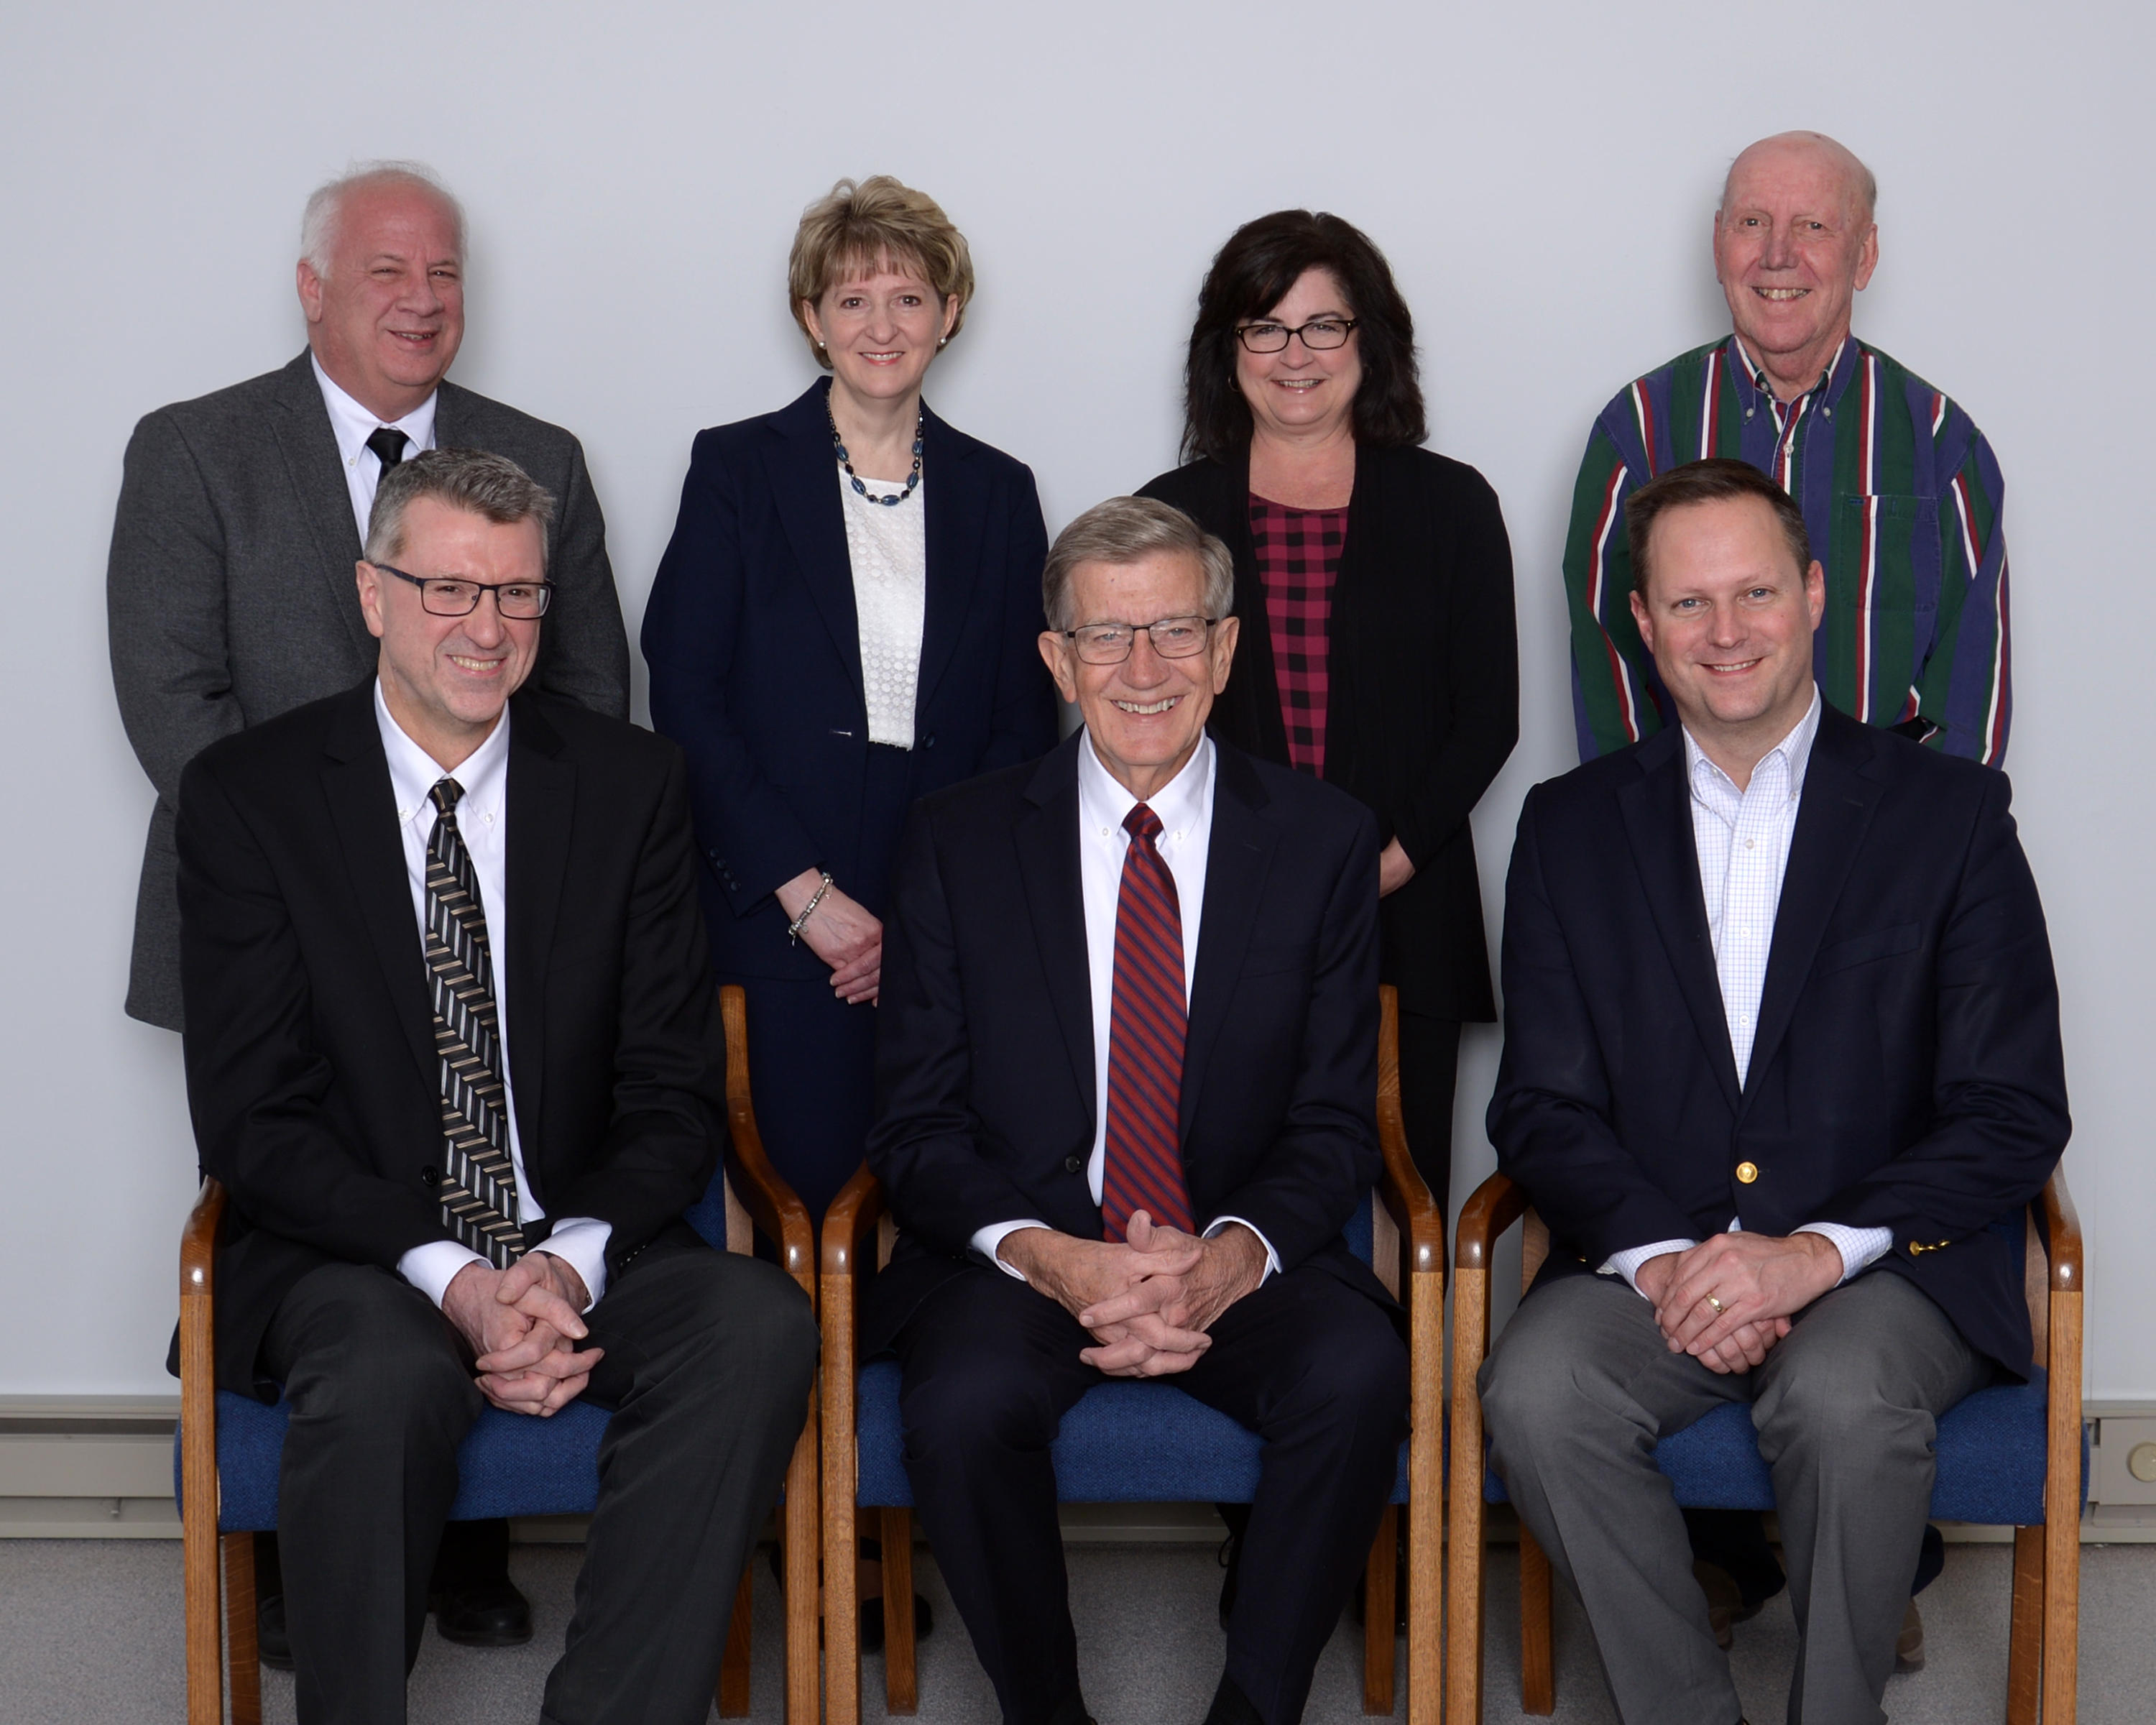 Board of Education Group Photo